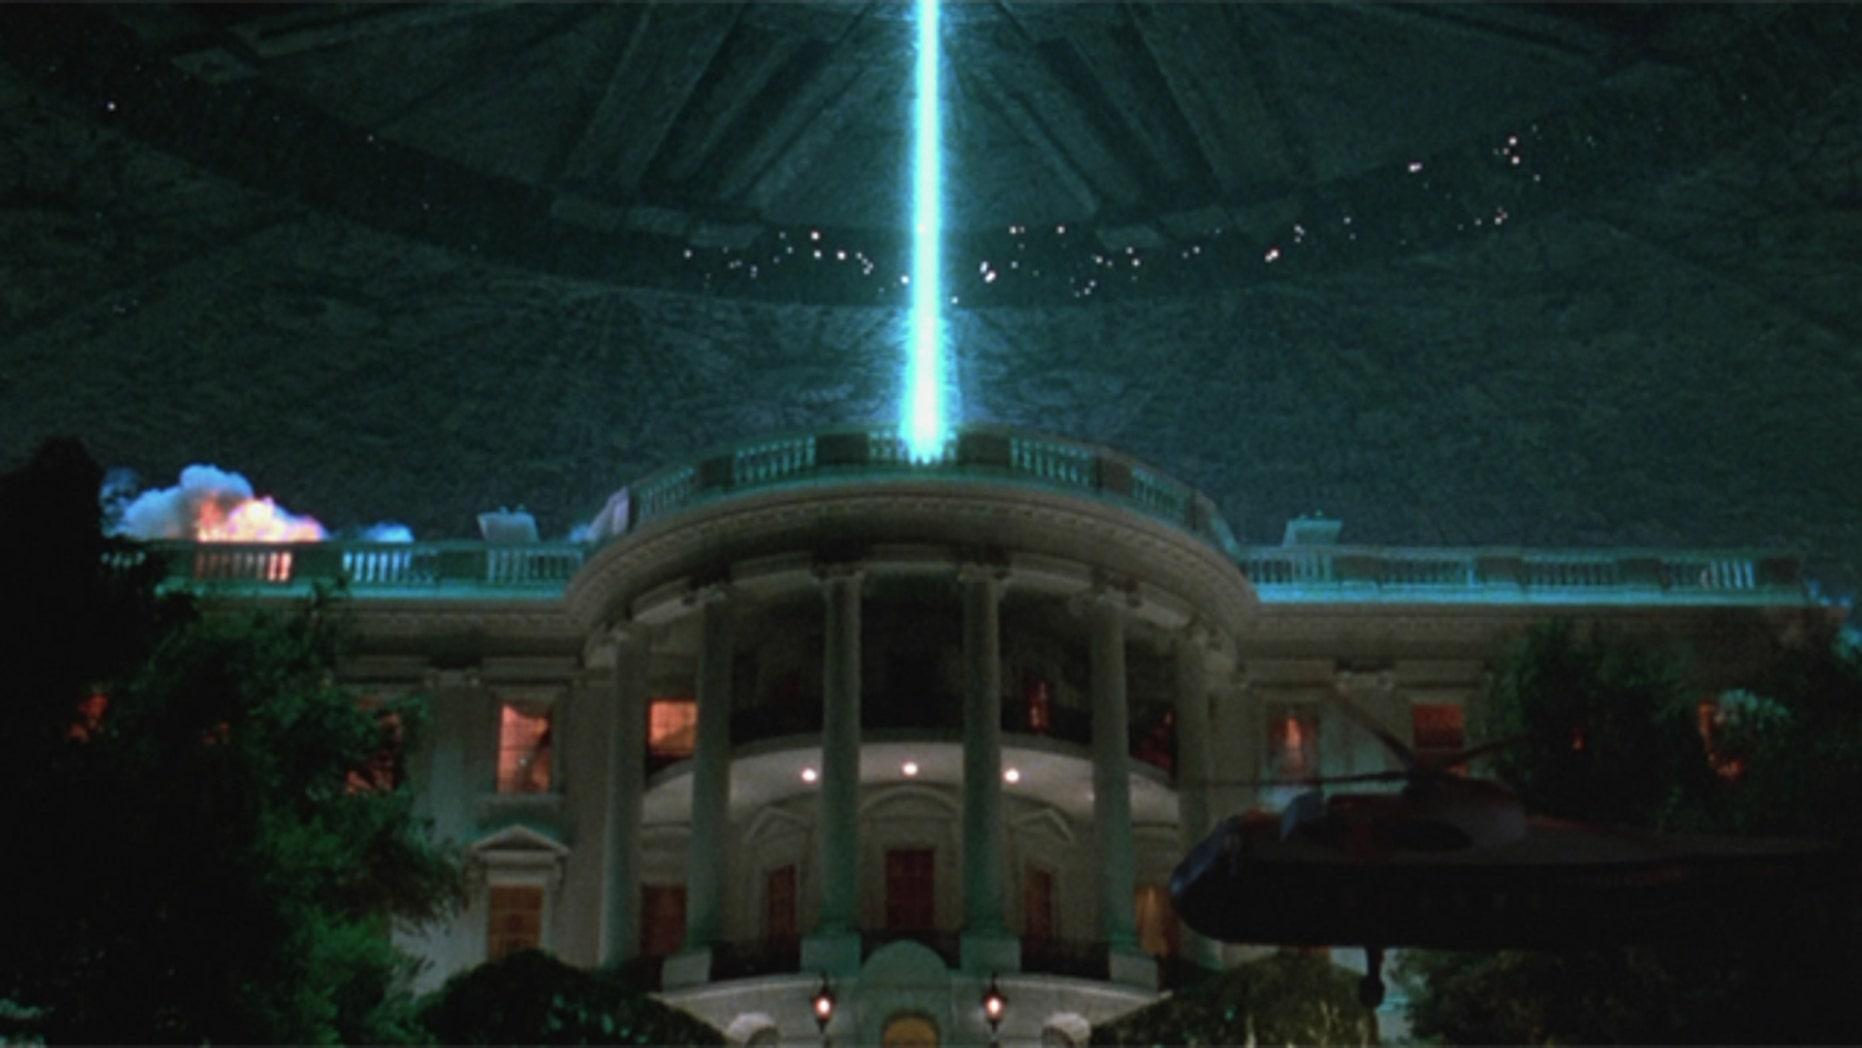 No sign of aliens, the White House said -- yet.